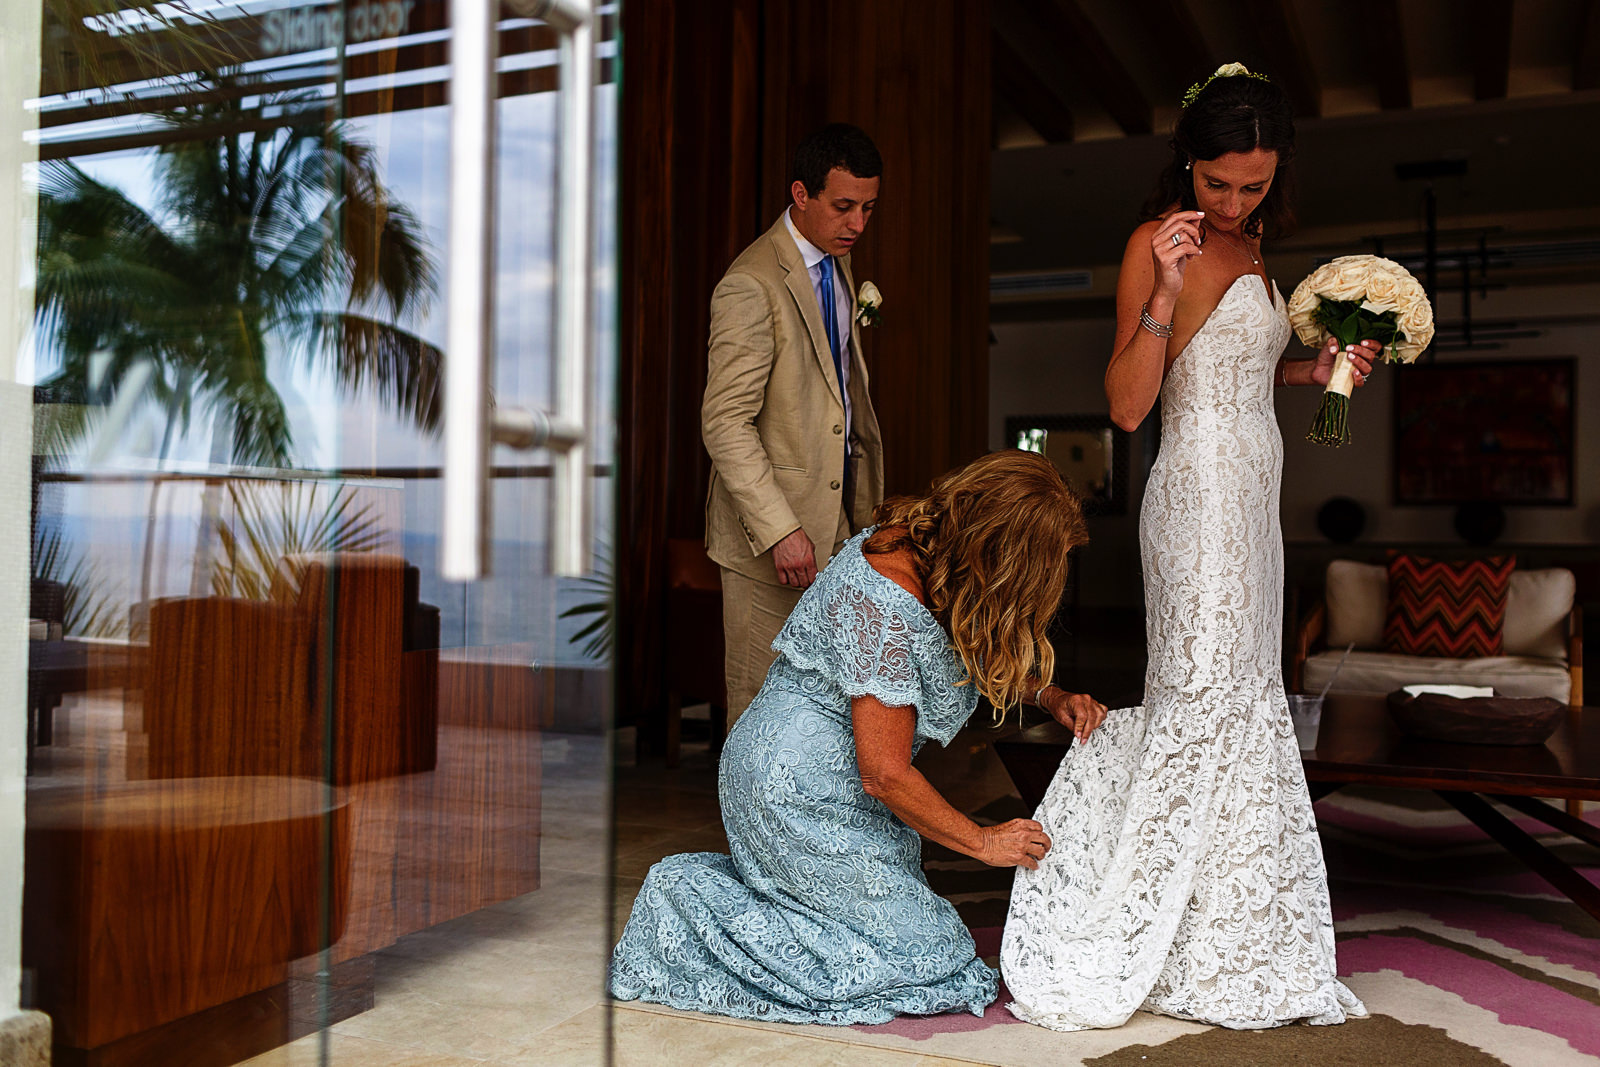 Mother of the bride helps to do the bustle of the wedding dress - Eder Acevedo cancun los cabos vallarta wedding photographer